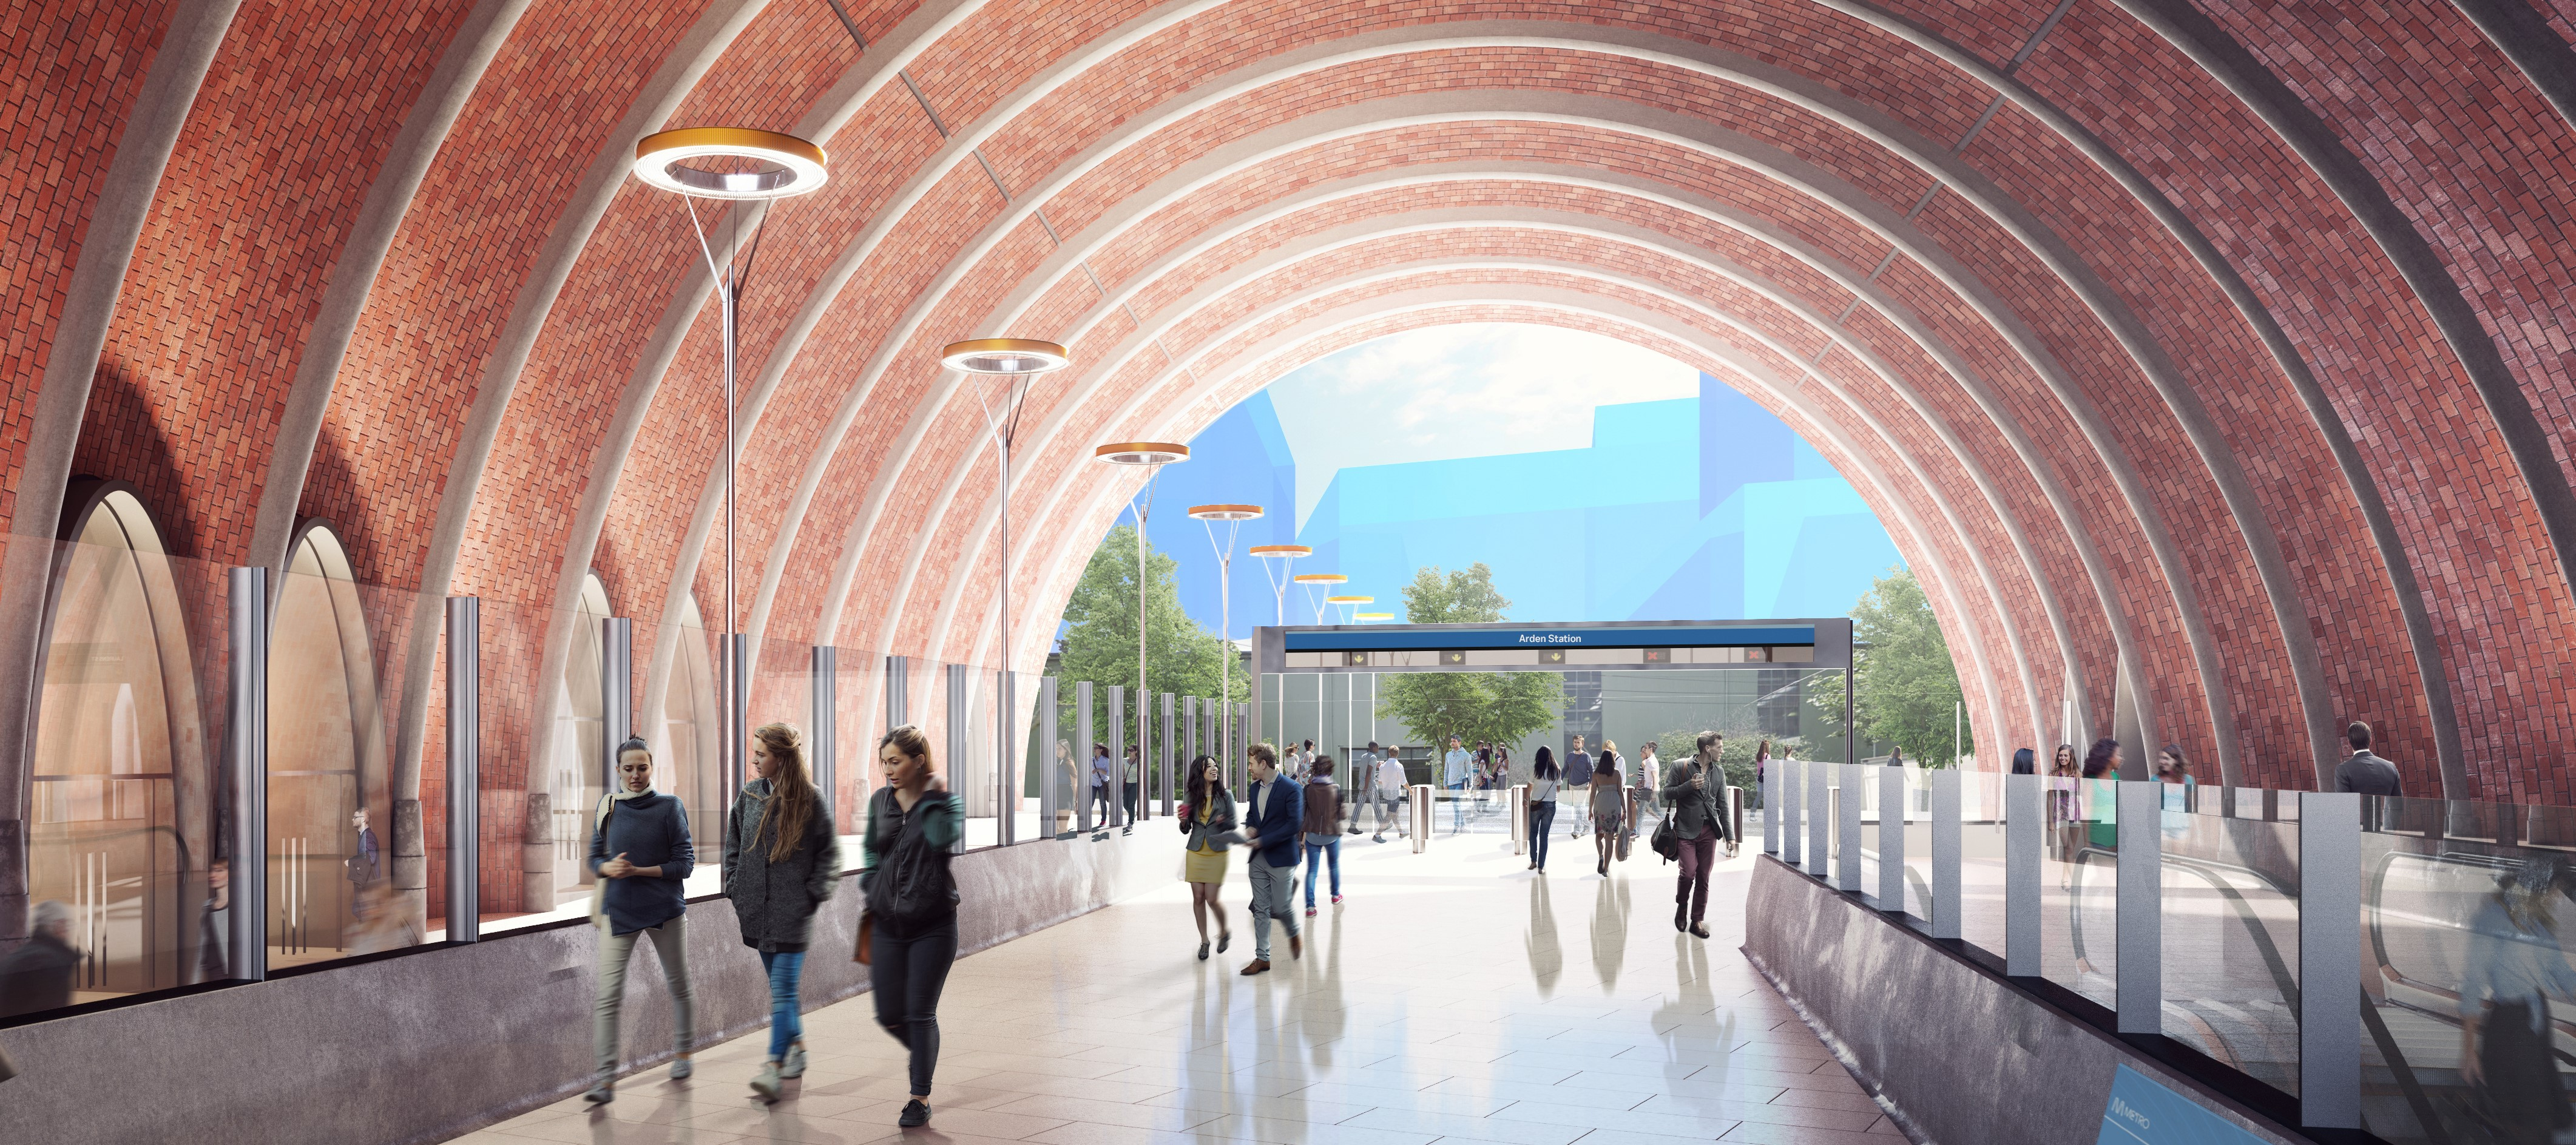 Concept image of brick arch entryway at Arden Station